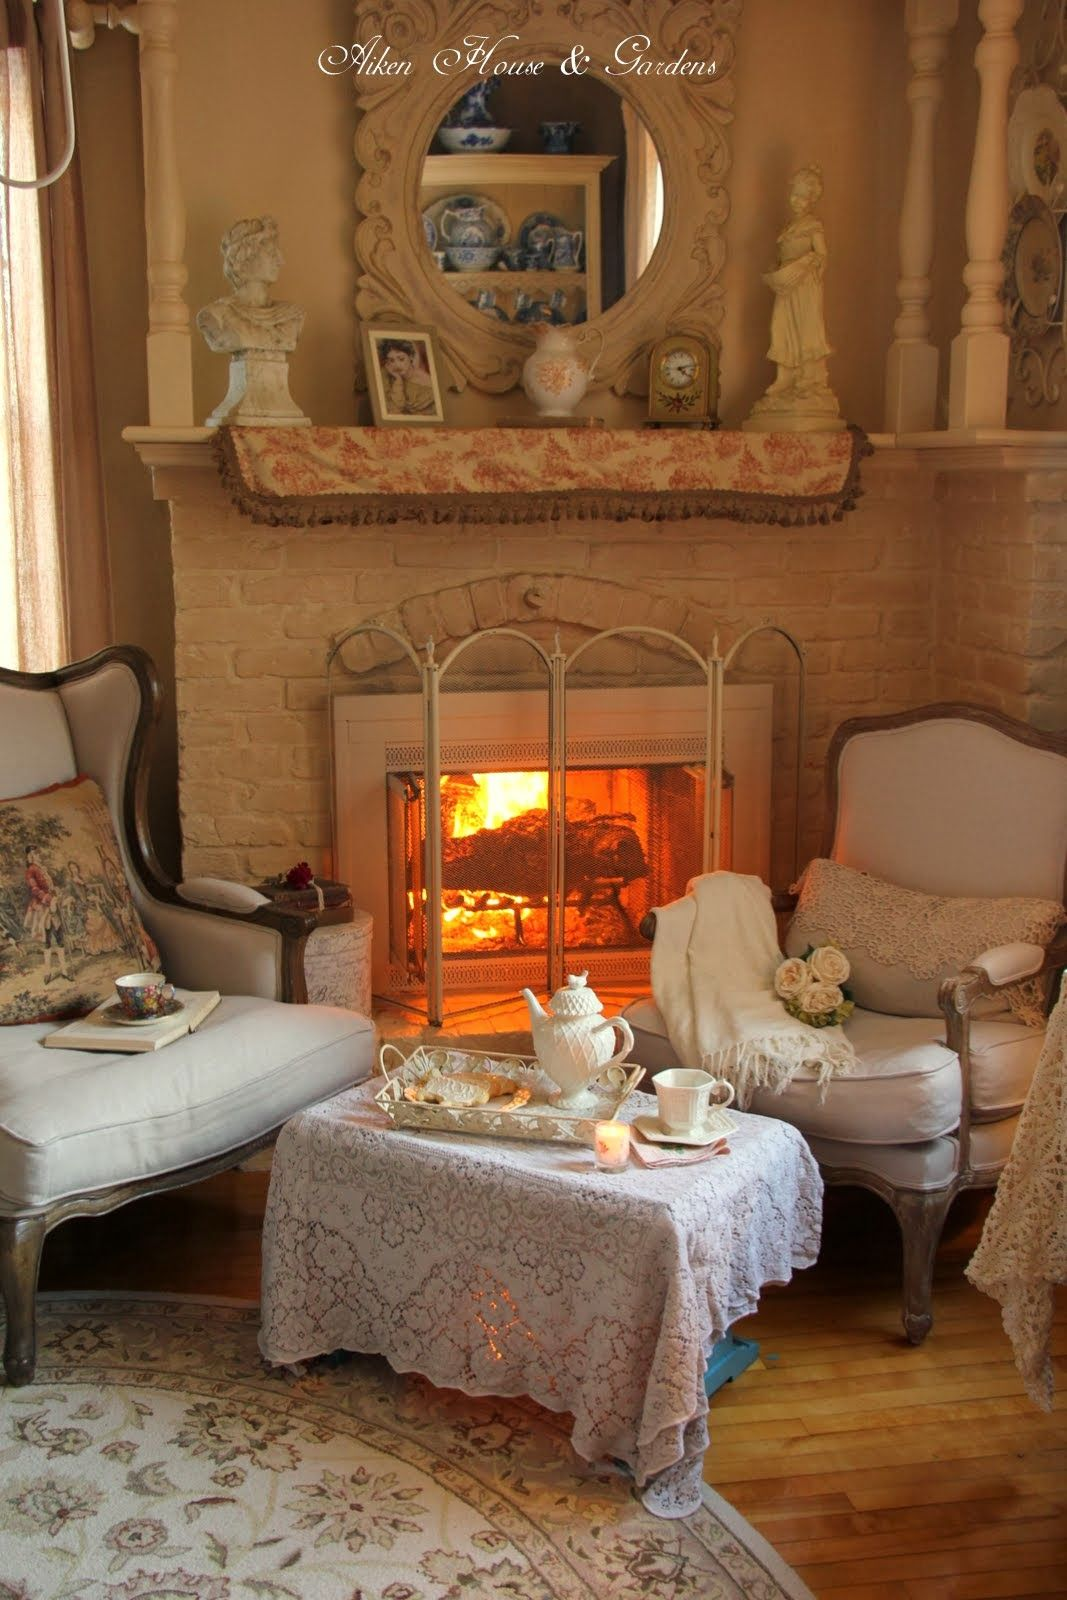 In Winter having afternoon tea by the fireplace is comfort